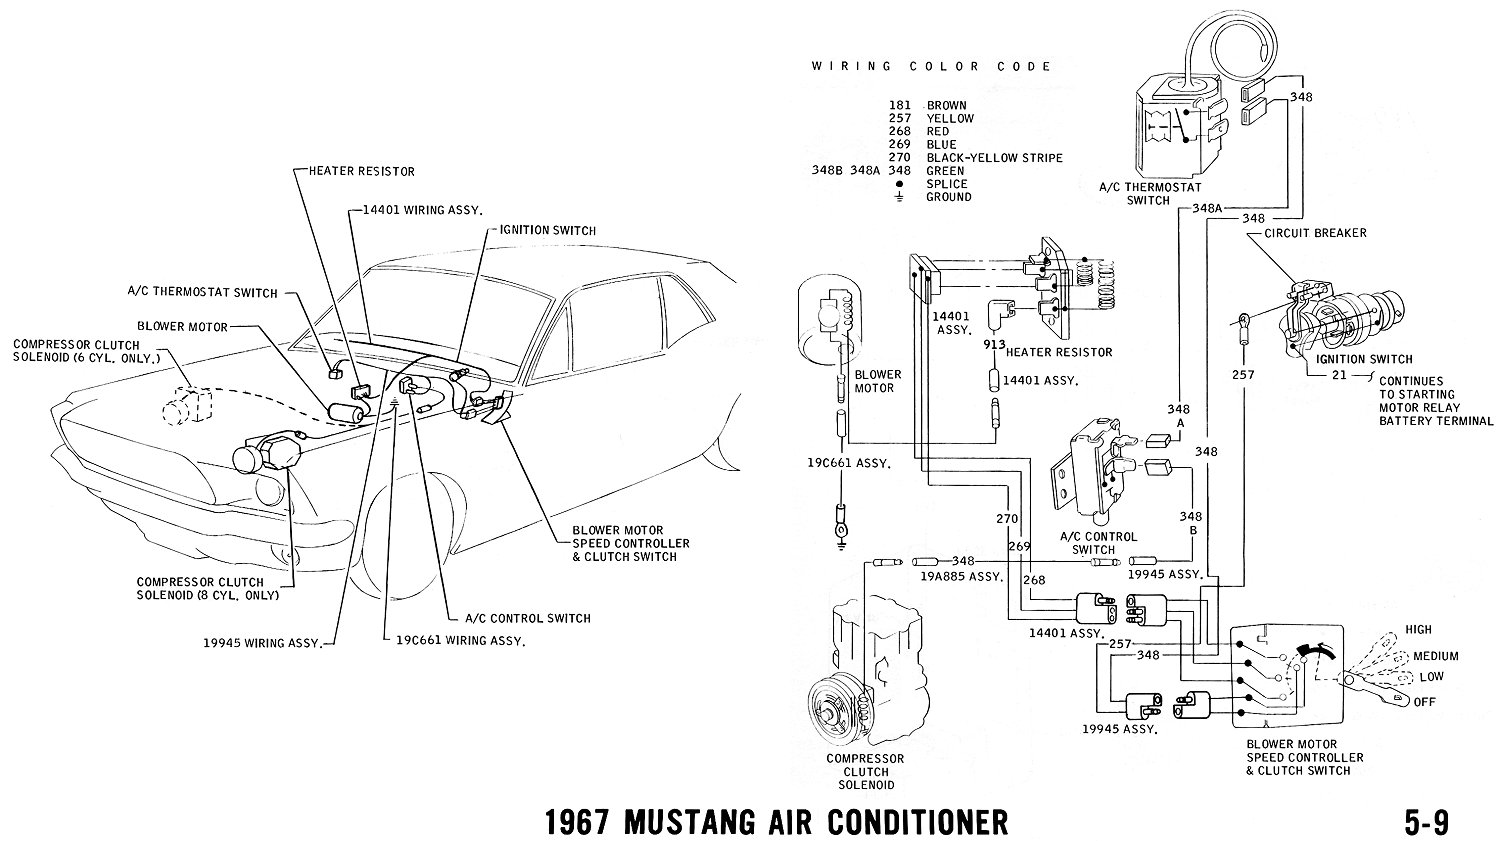 Classic Auto Air Conditioning Wiring Diagram V Electric Air Conditioning Compressor How Can You